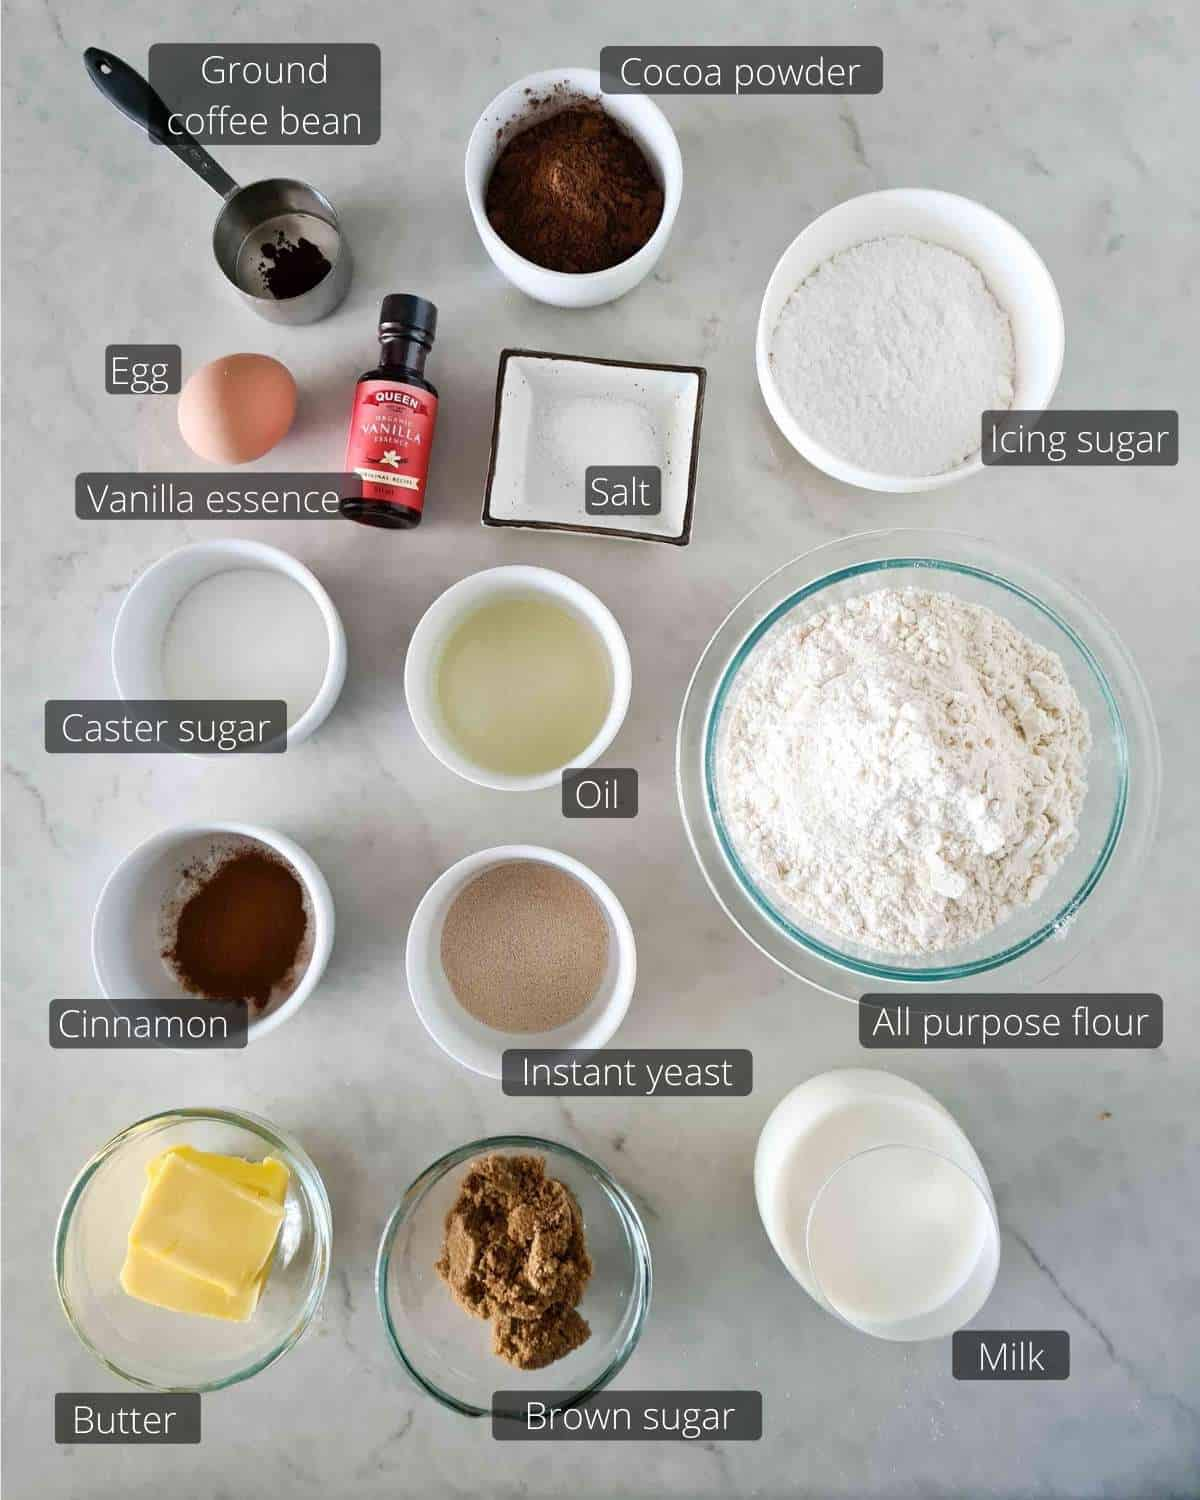 All the ingredients needed for this recipe, labled.